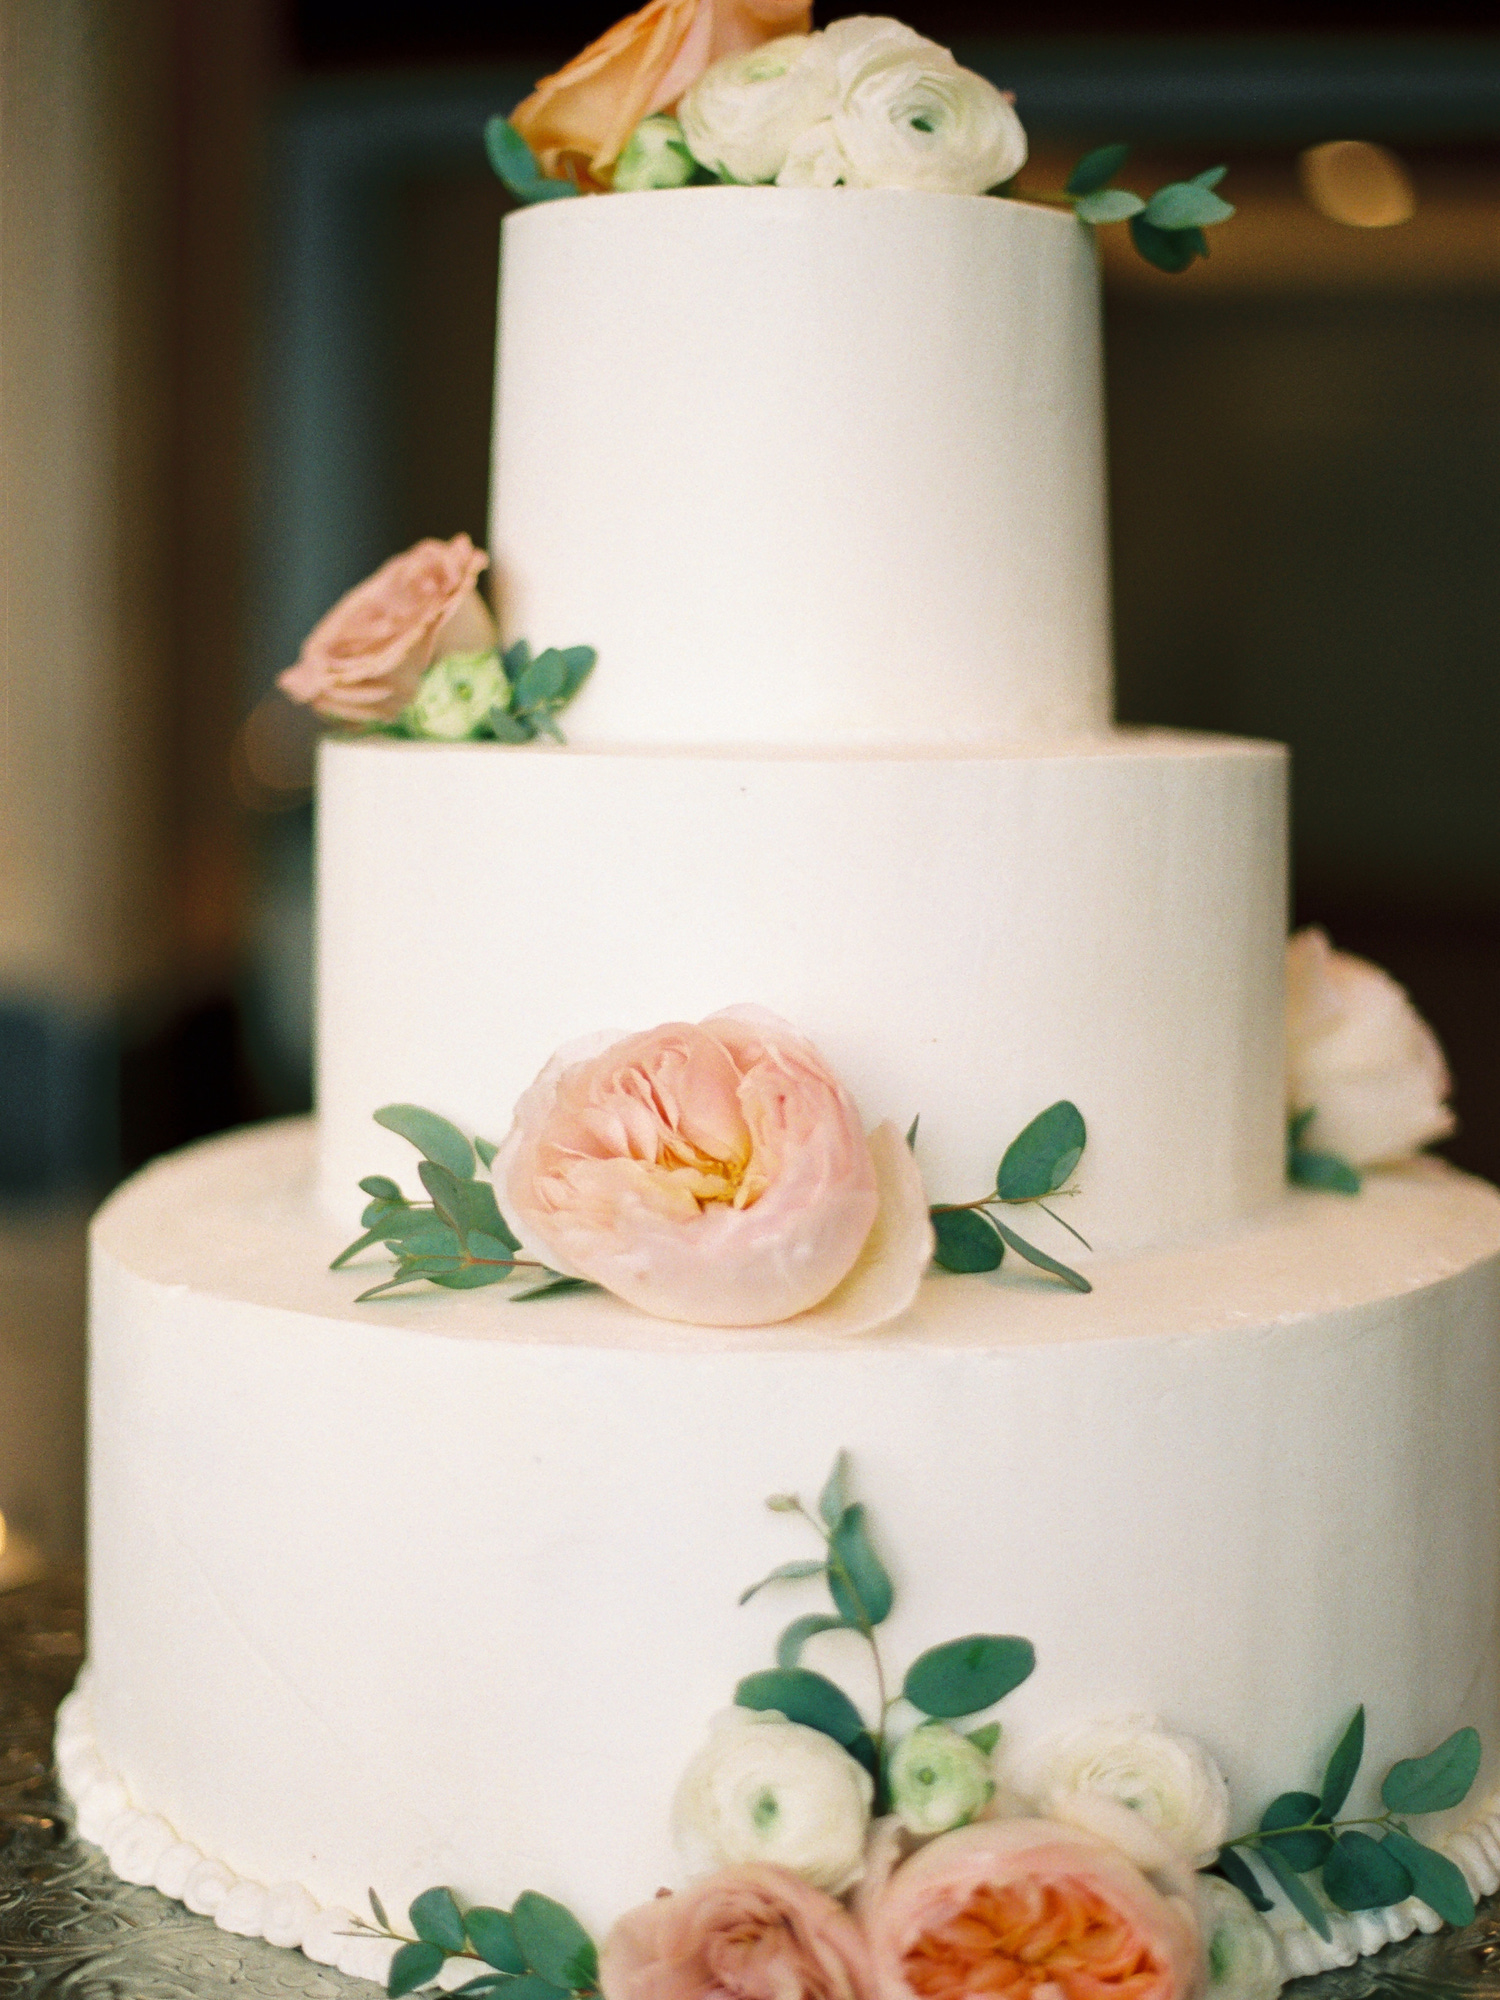 Classic white wedding cake with flowers from The Sonnenalp